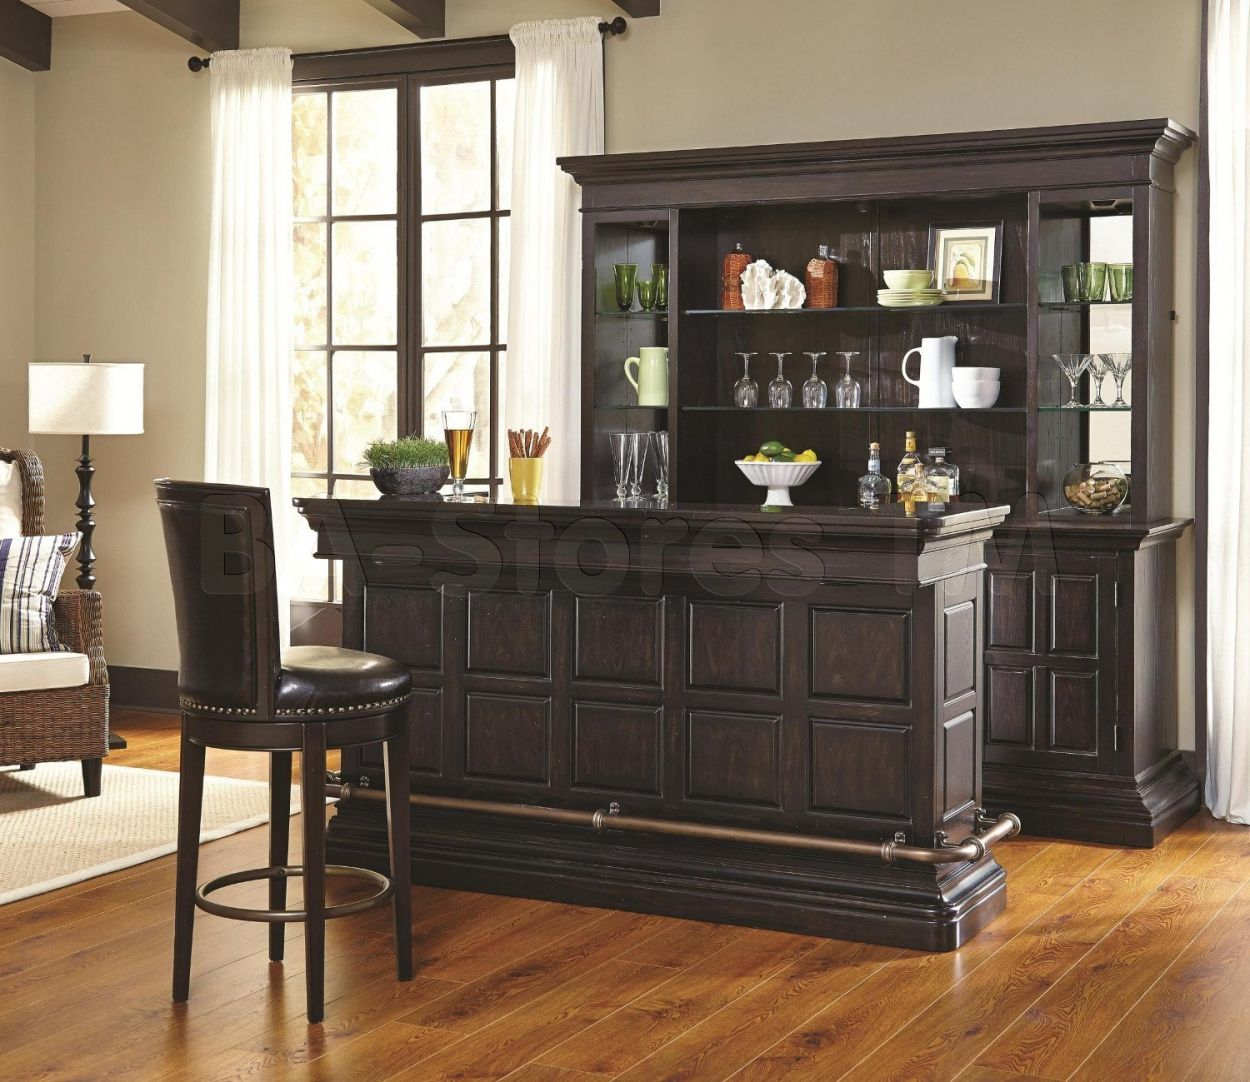 Bar Back Furniture - Best Way to Paint Furniture Check more at http://